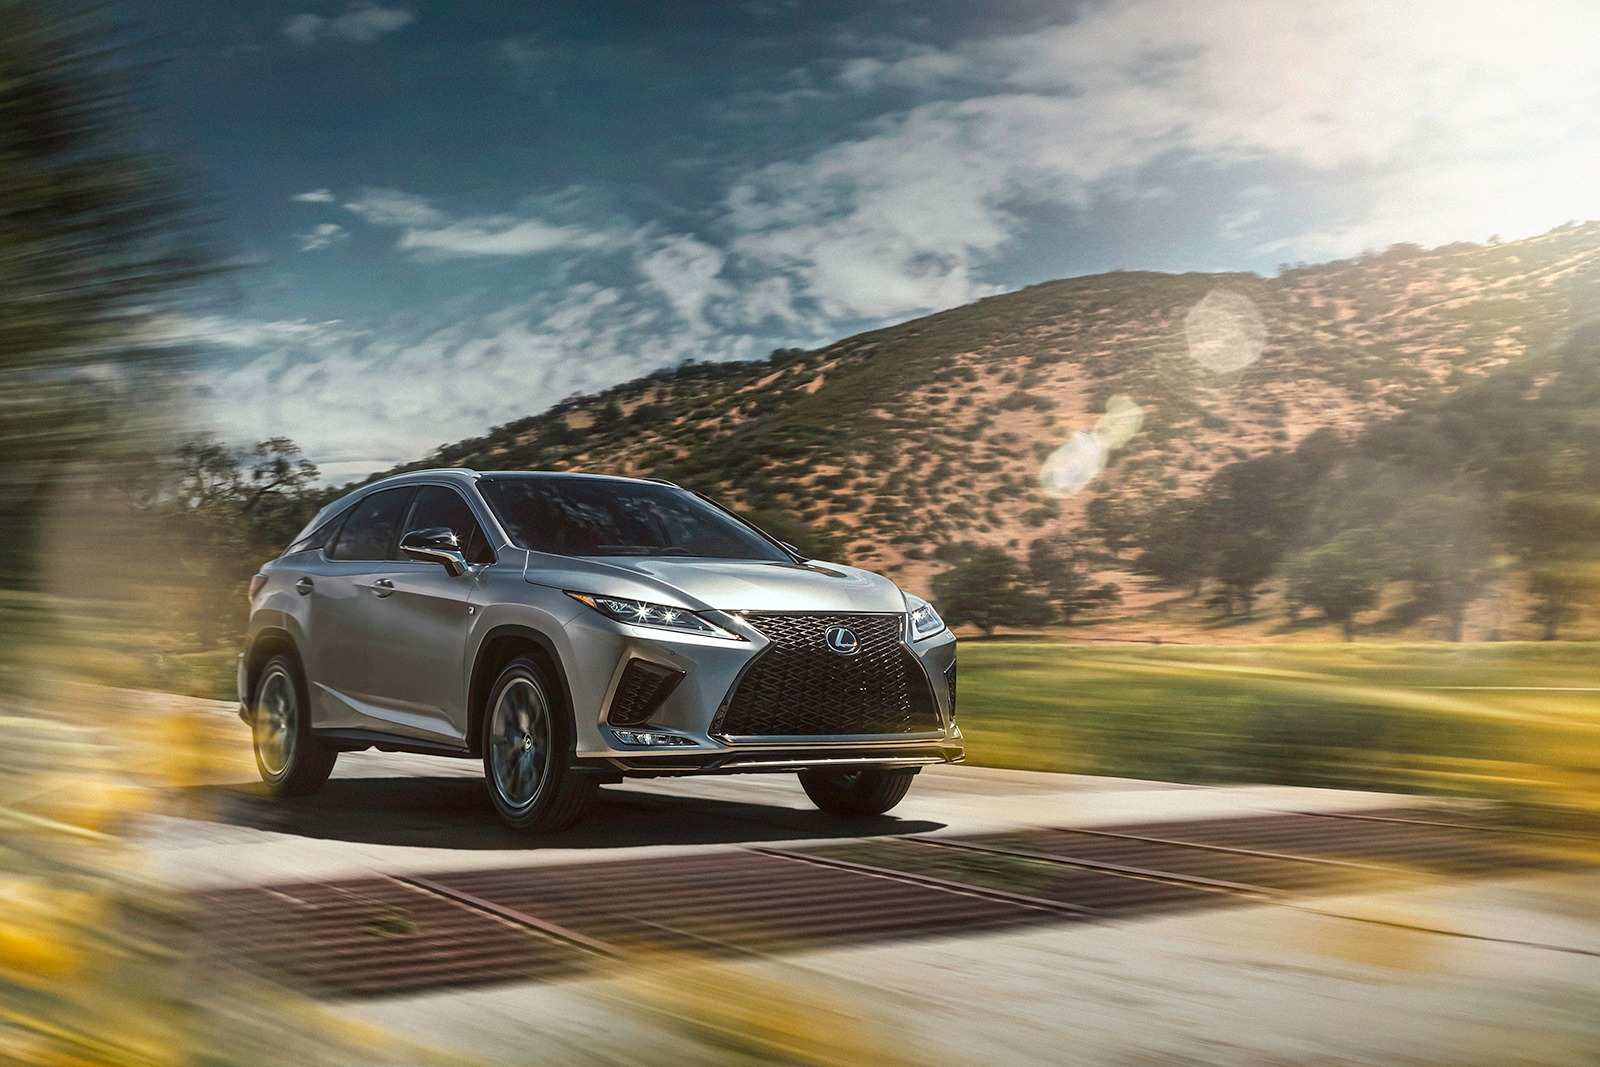 31 New When Will The 2020 Lexus Rx Come Out Wallpaper